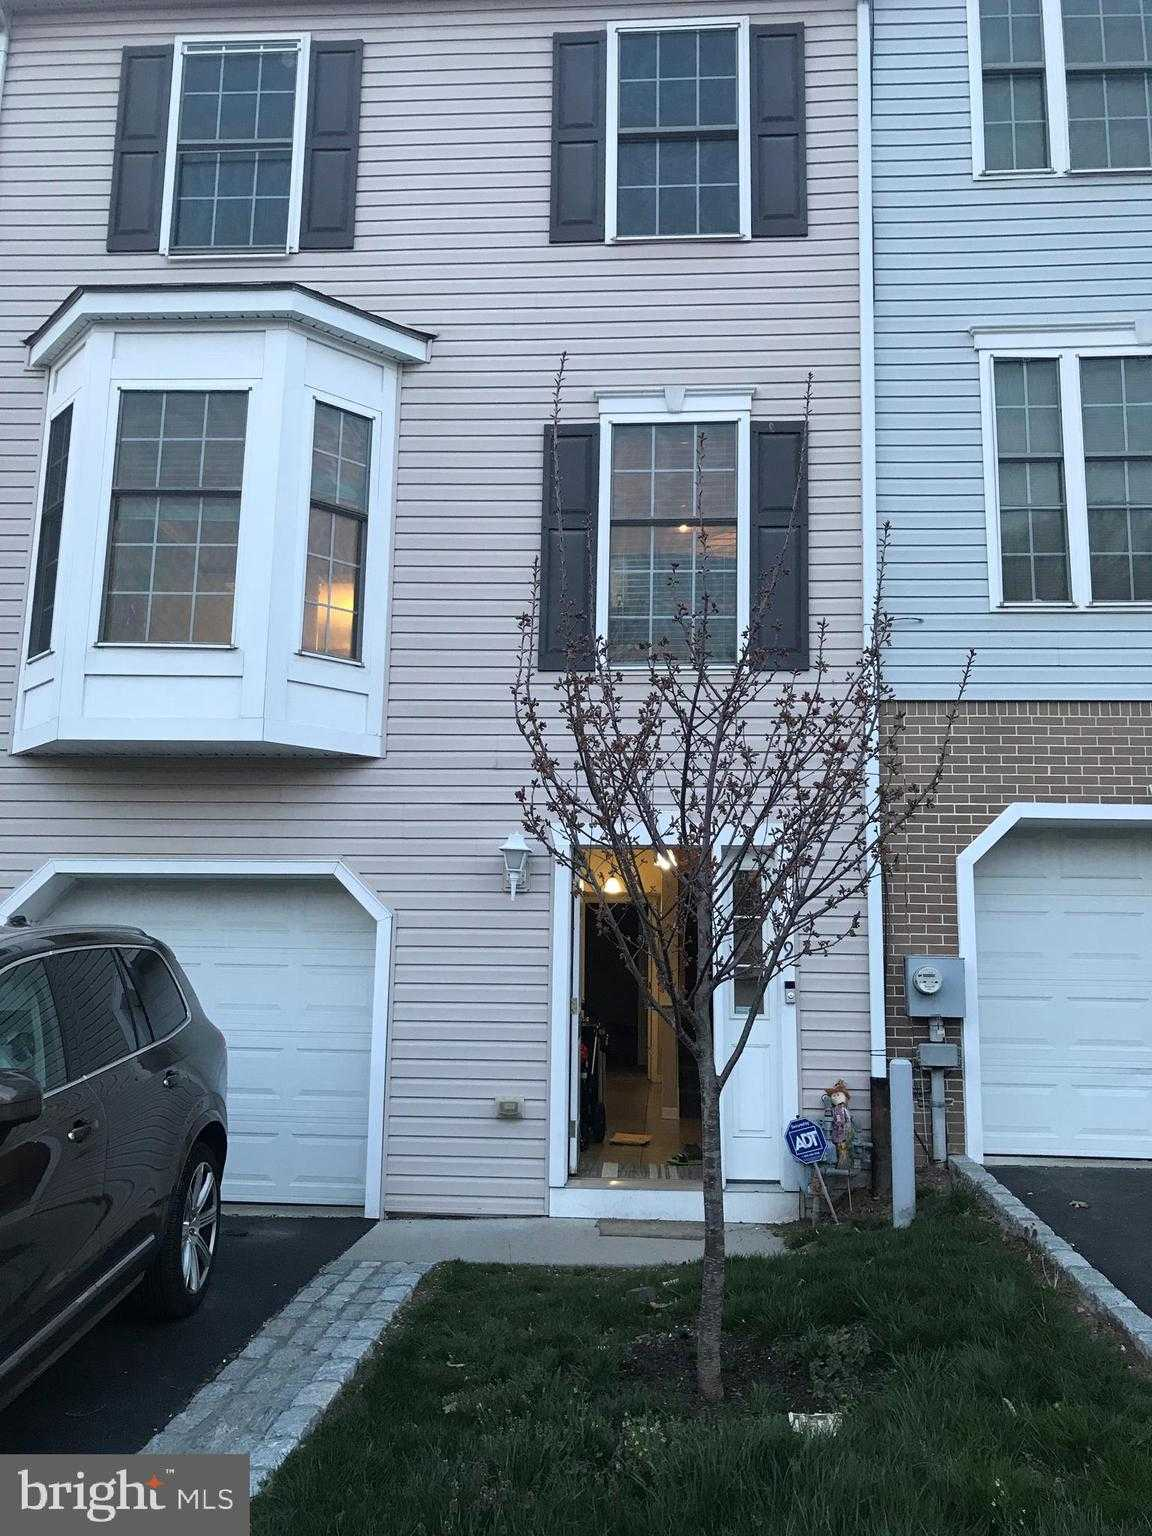 $2,300 - 3Br/3Ba -  for Sale in Roxborough, Philadelphia